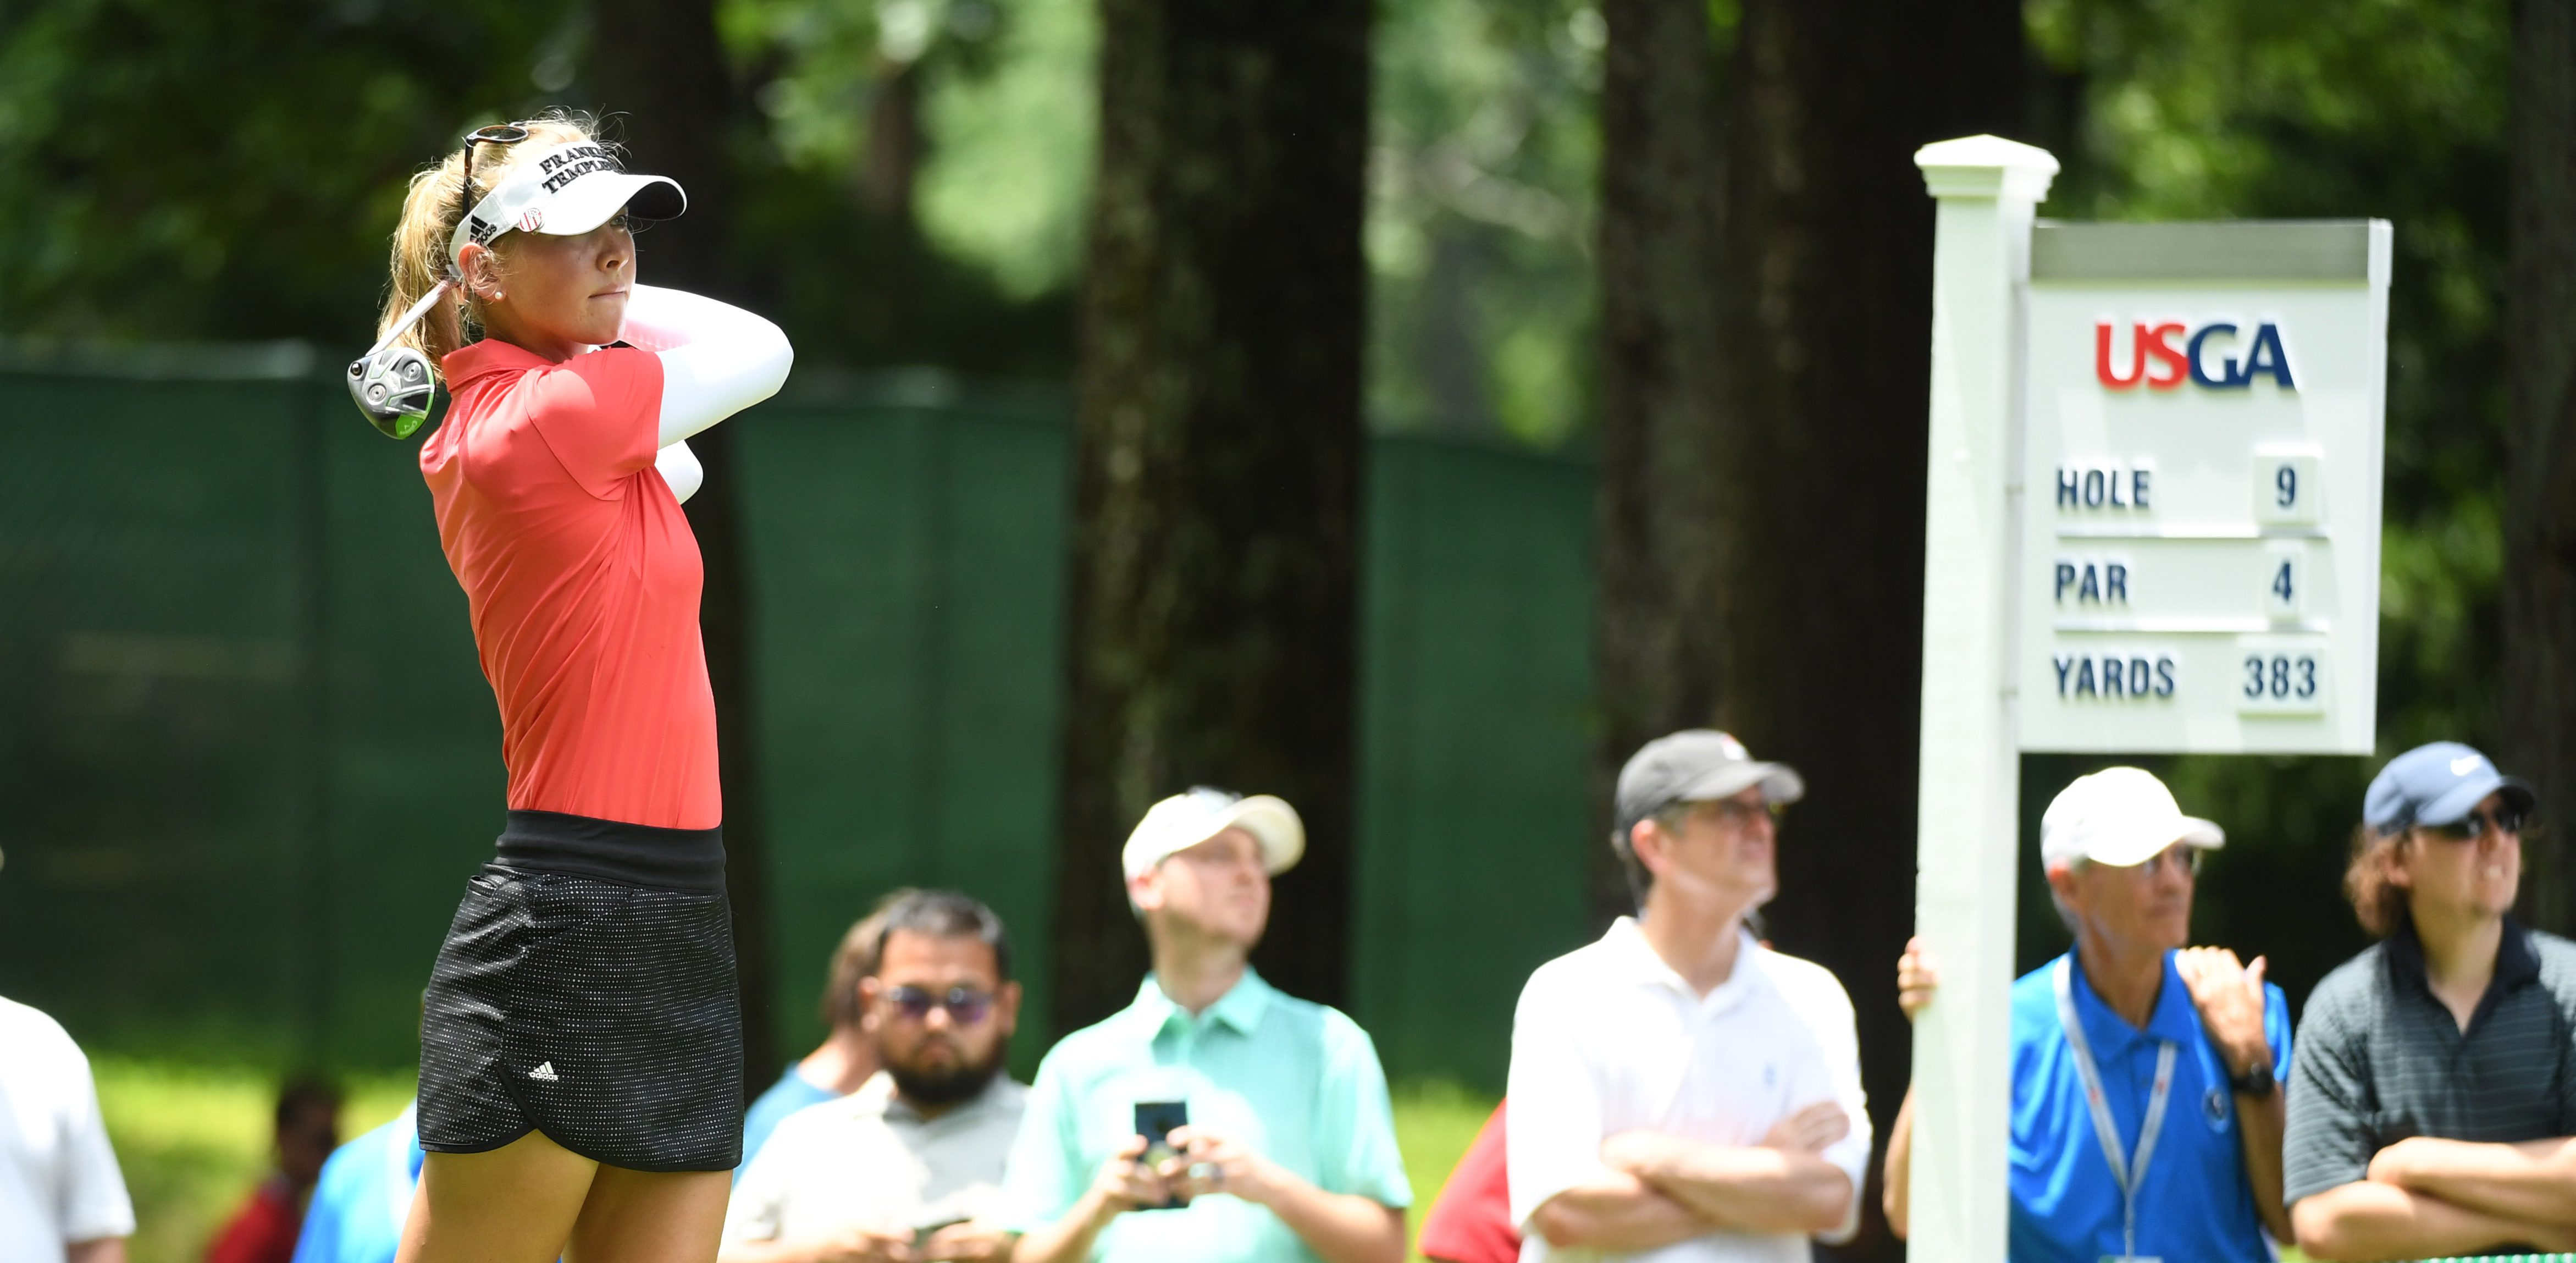 May 31, 2018; Shoal Creek, AL, USA; Jessica Korda hits from the ninth tee during the first round of the U.S. Women's Open Championship golf tournament at Shoal Creek. Mandatory Credit: John David Mercer-USA TODAY Sports